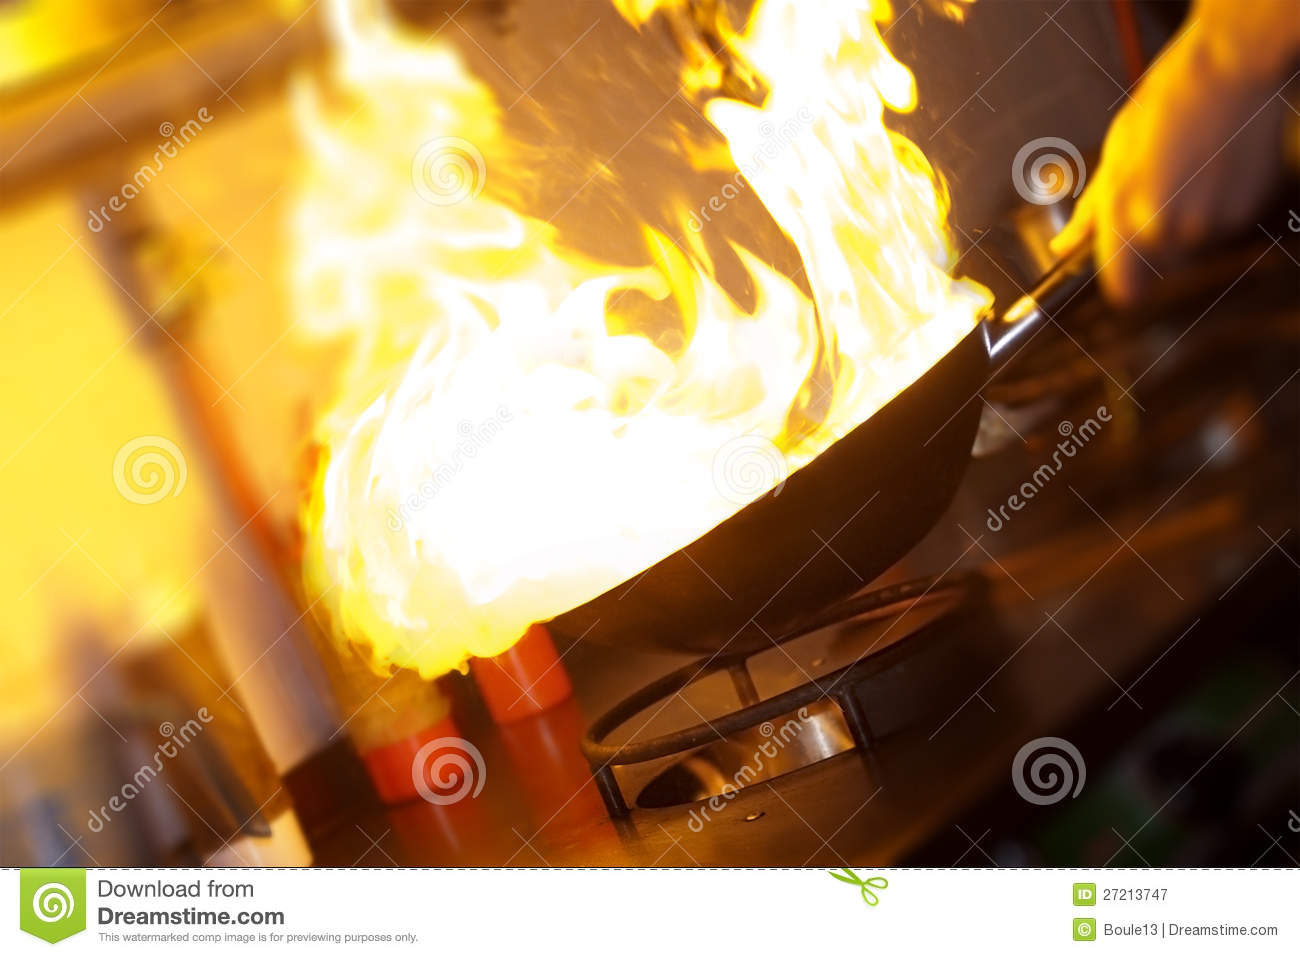 Chef is making flambe